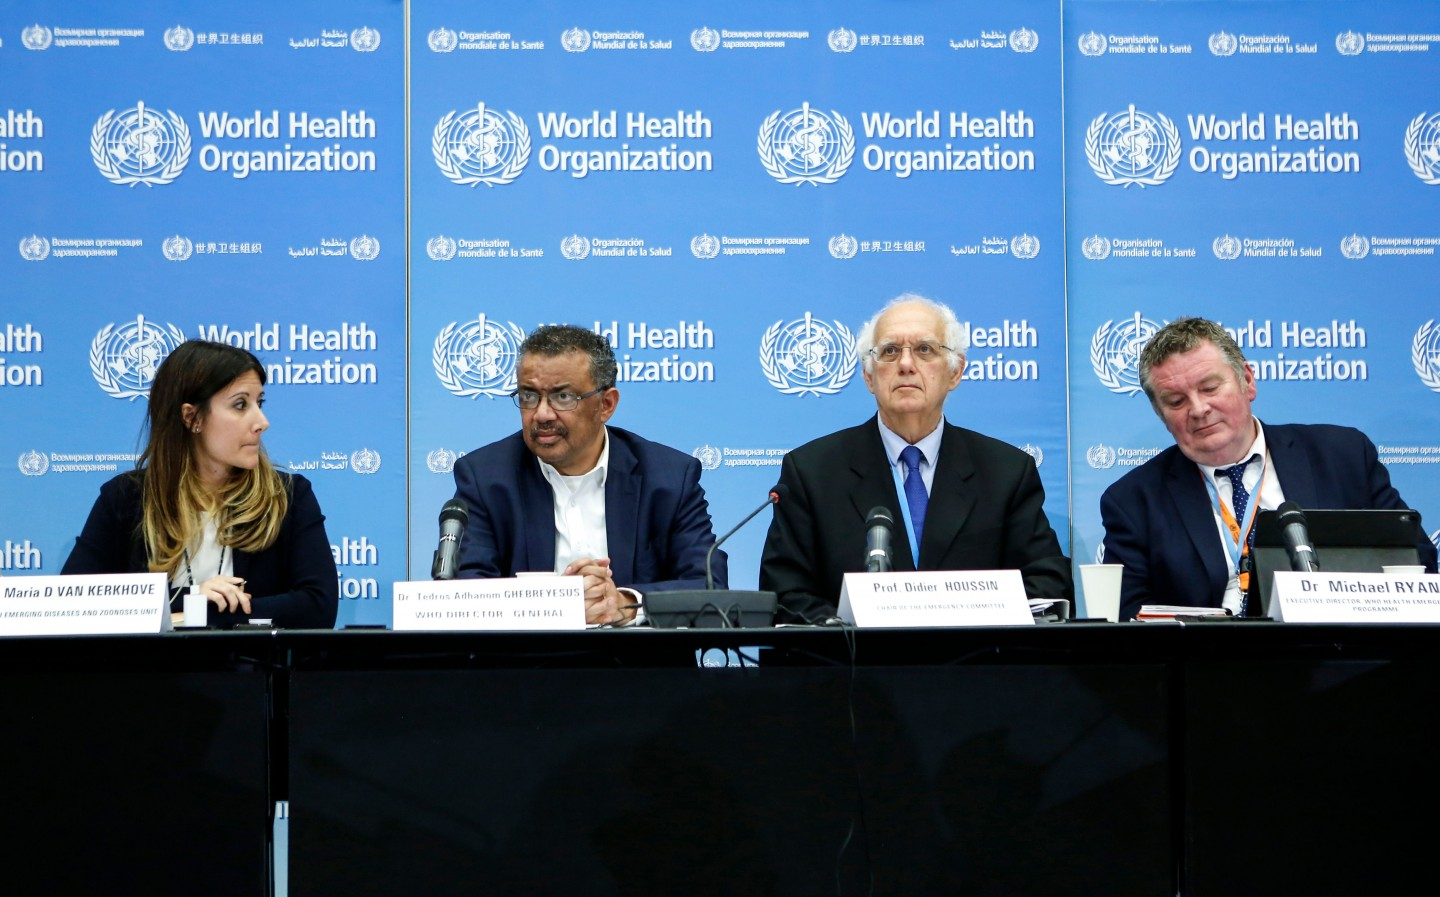 Taiwan has been trying to gain membership into the WHO. In this photo taken on 22 January 2020 in Geneva, (left to right) Dr. Maria D Van Kerkhove, Tedros Adhanom Ghebreyesus, Professor Didier Houssin, and Michael Ryan sit together for a press conference following an emergency committee meeting over 2019-nCoV spreading in China and other nations. (Pierre Albouy/AFP)